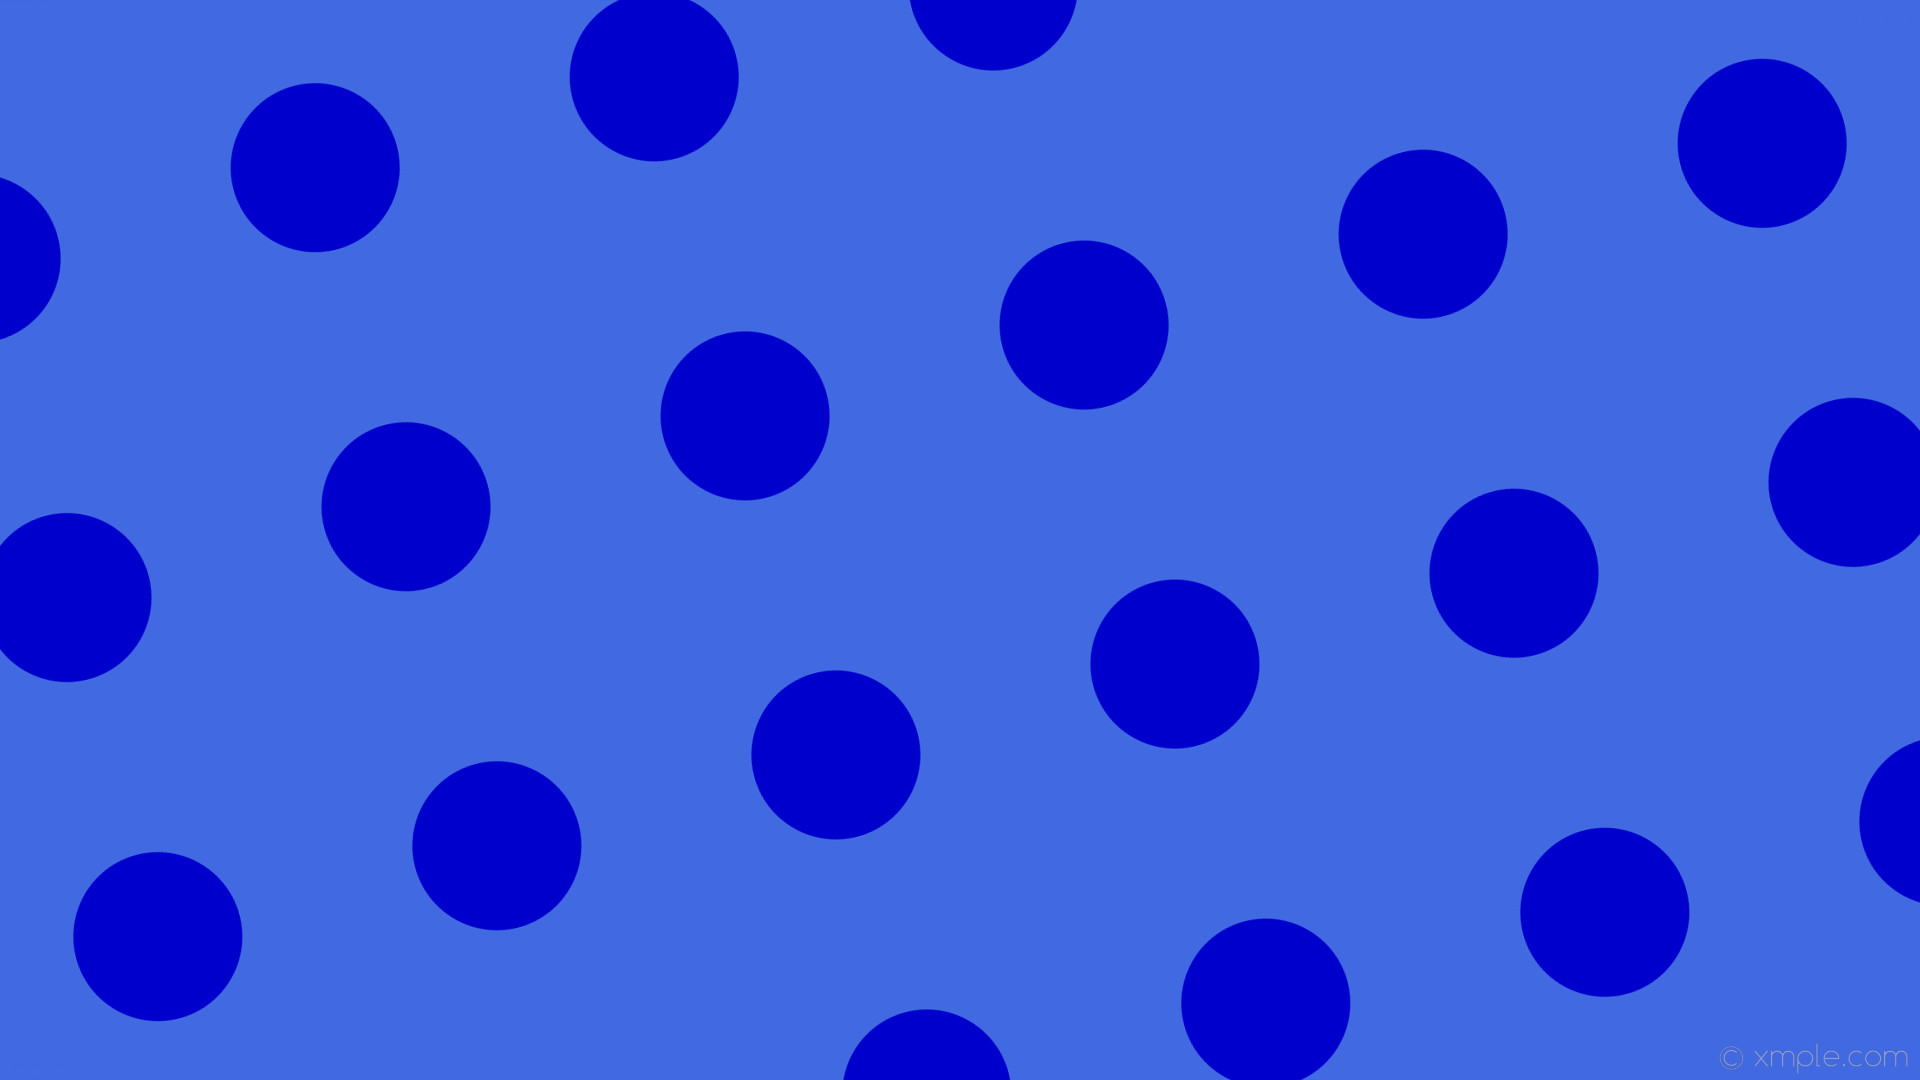 wallpaper blue polka dots spots royal blue medium blue #4169e1 #0000cd 285°  169px